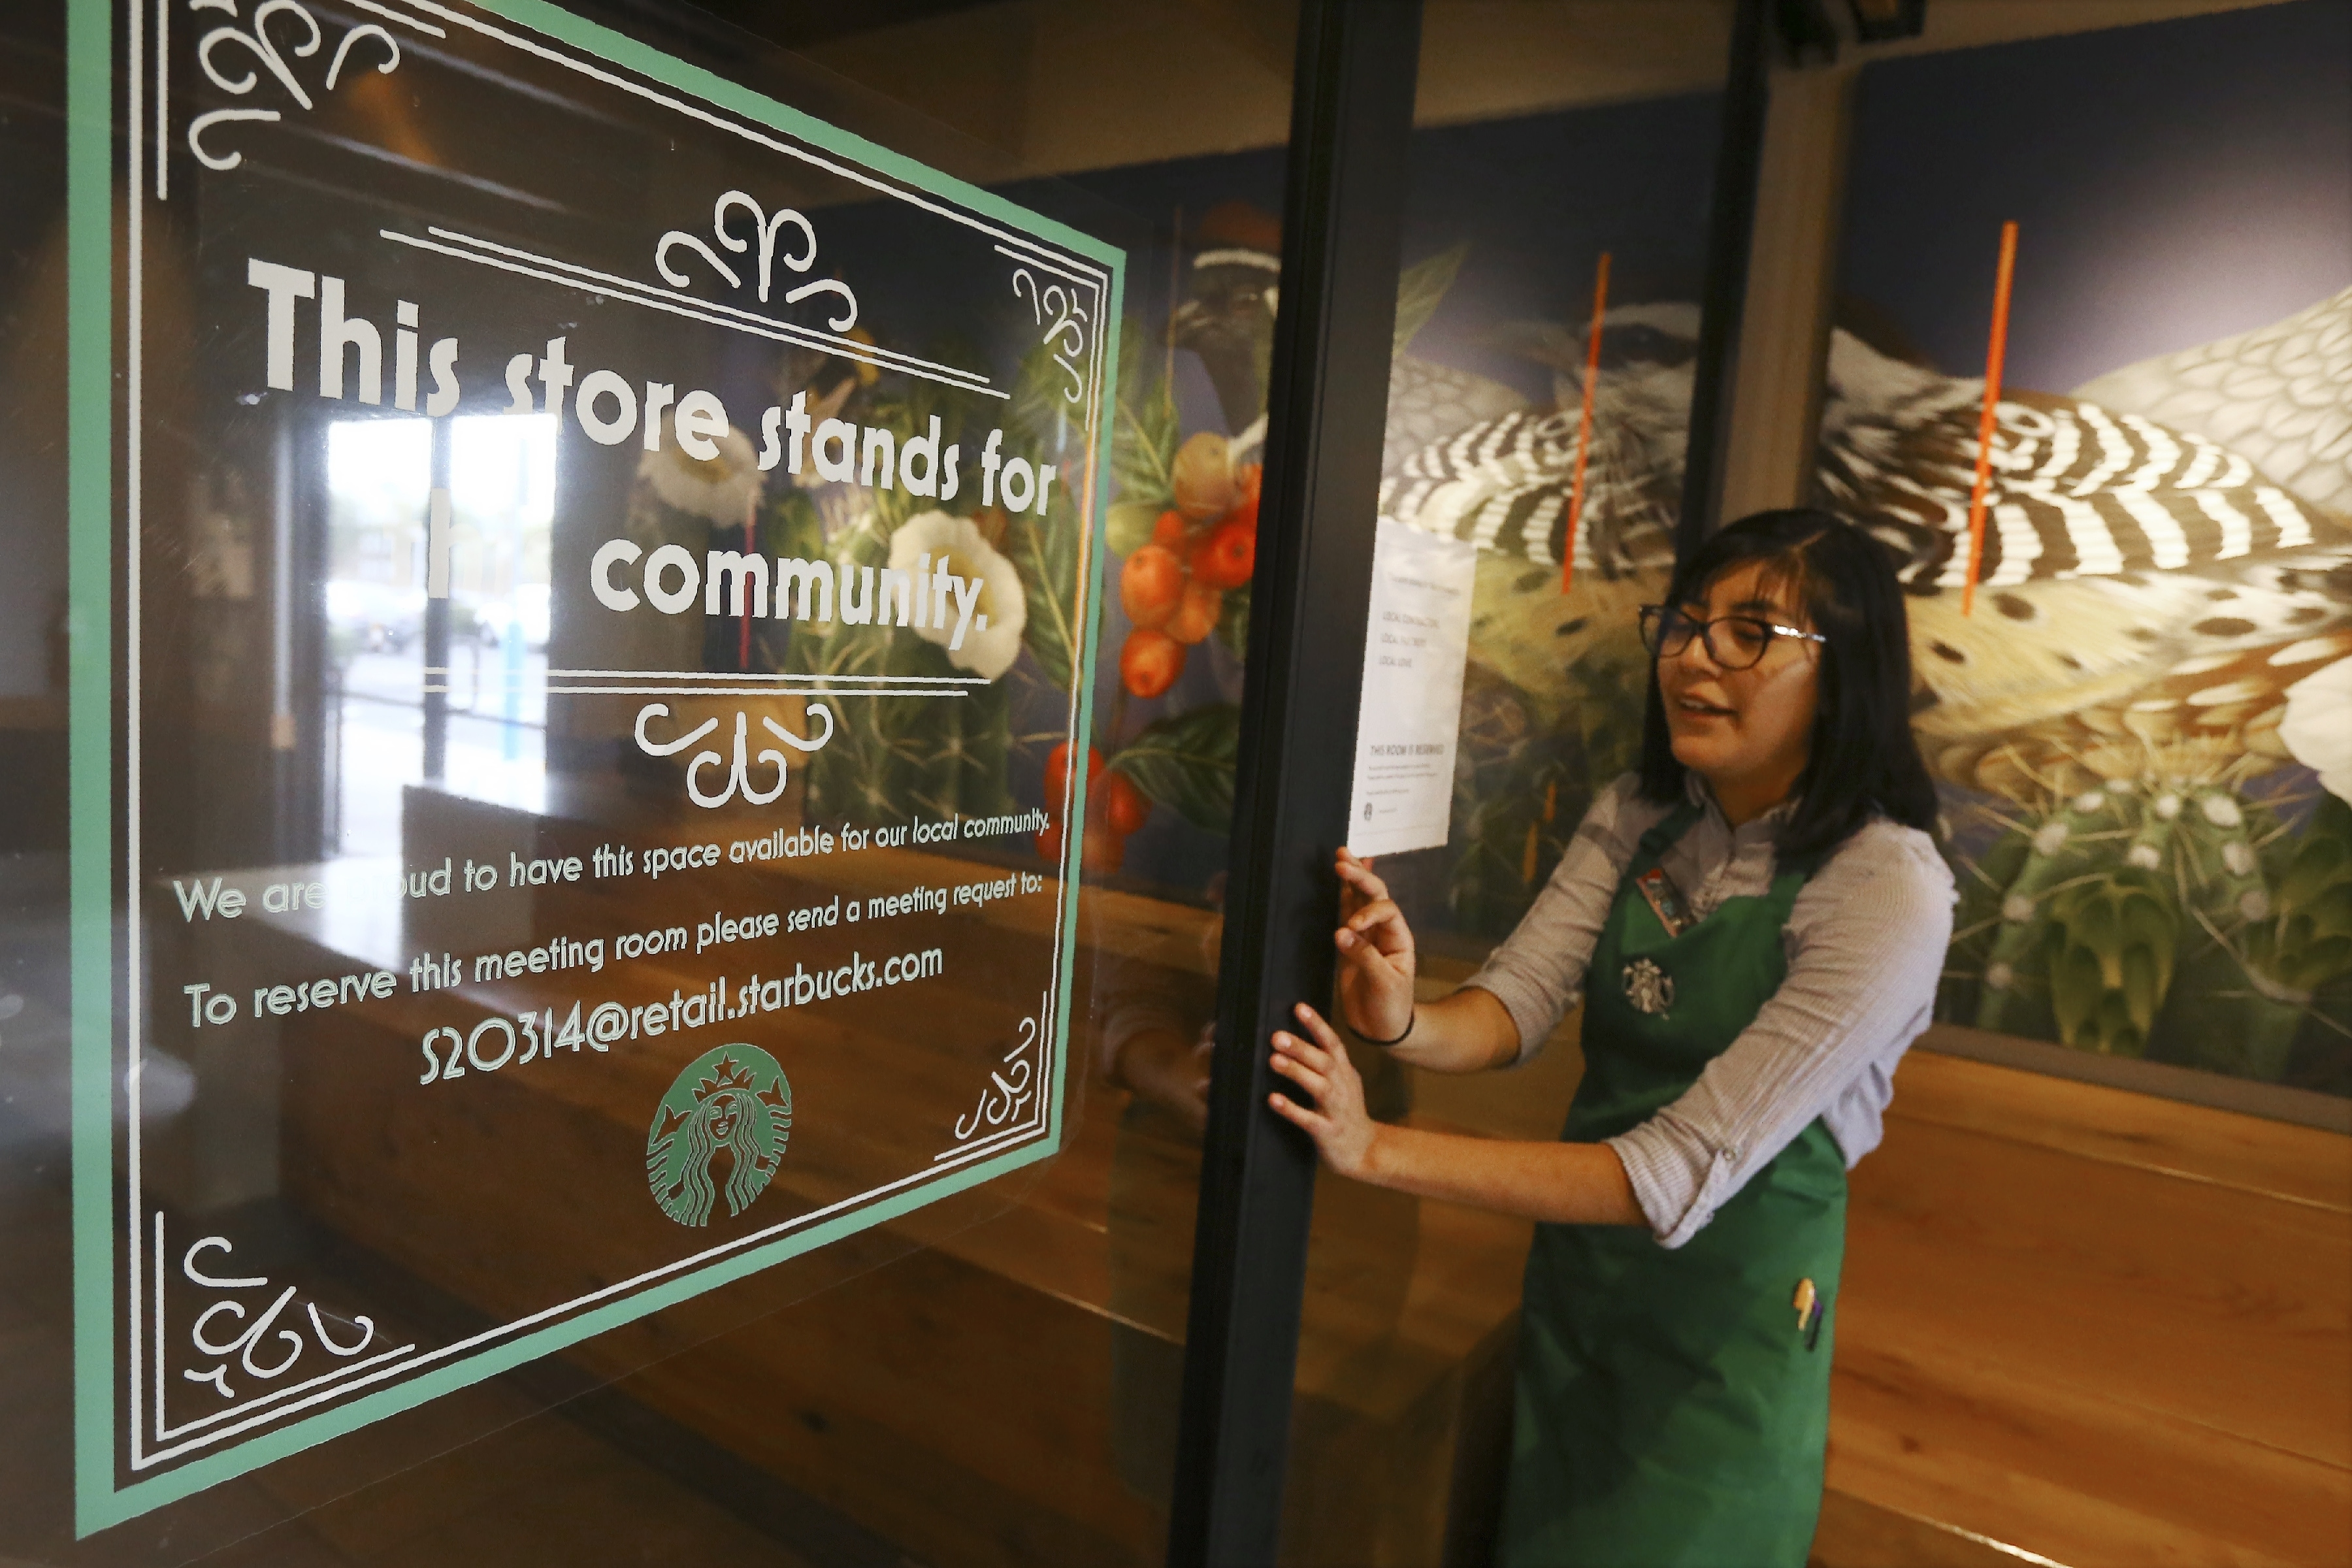 Belith Ariza, a barista trainer at Starbucks, opens the doors to the community meeting space at a local Starbucks Community Store, in Phoenix. The Seattle-based company plans to open or remodel 85 stores by 2025 in rural and urban communities across the U.S.